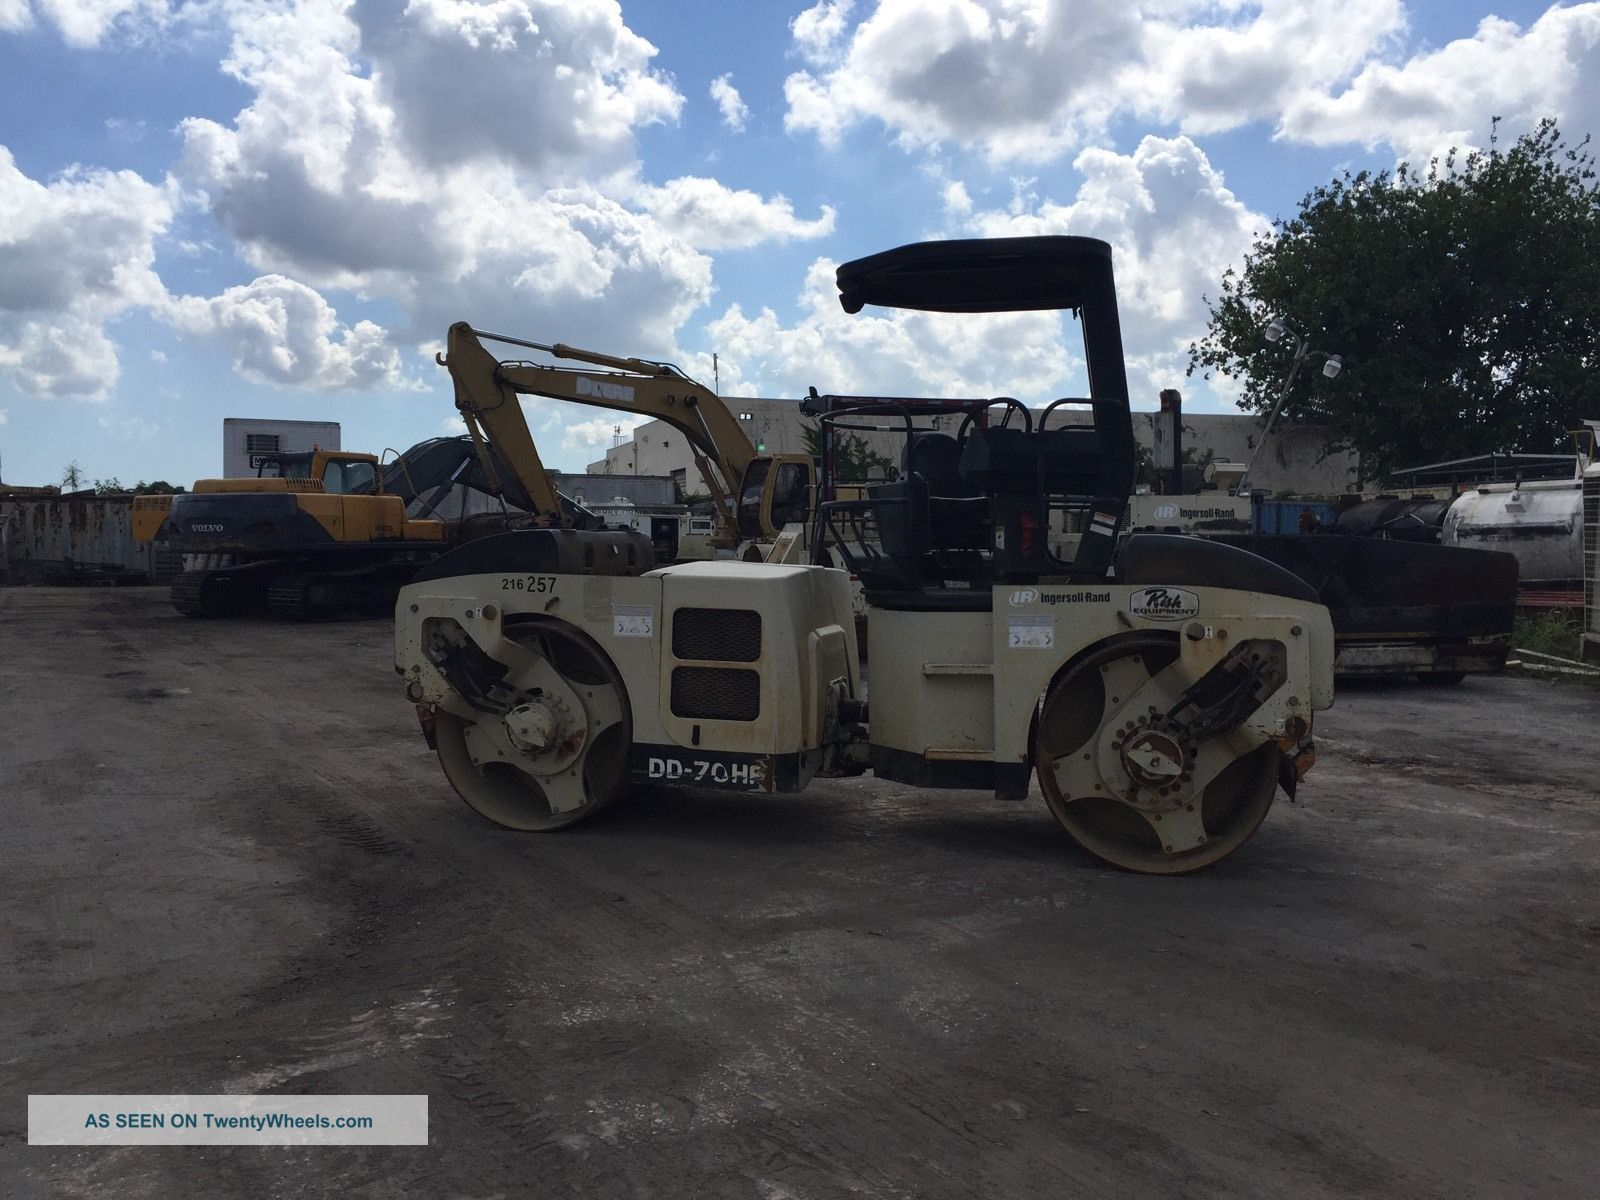 2004 Ingersoll - Rand Dd70 - Hf Compactors & Rollers - Riding photo